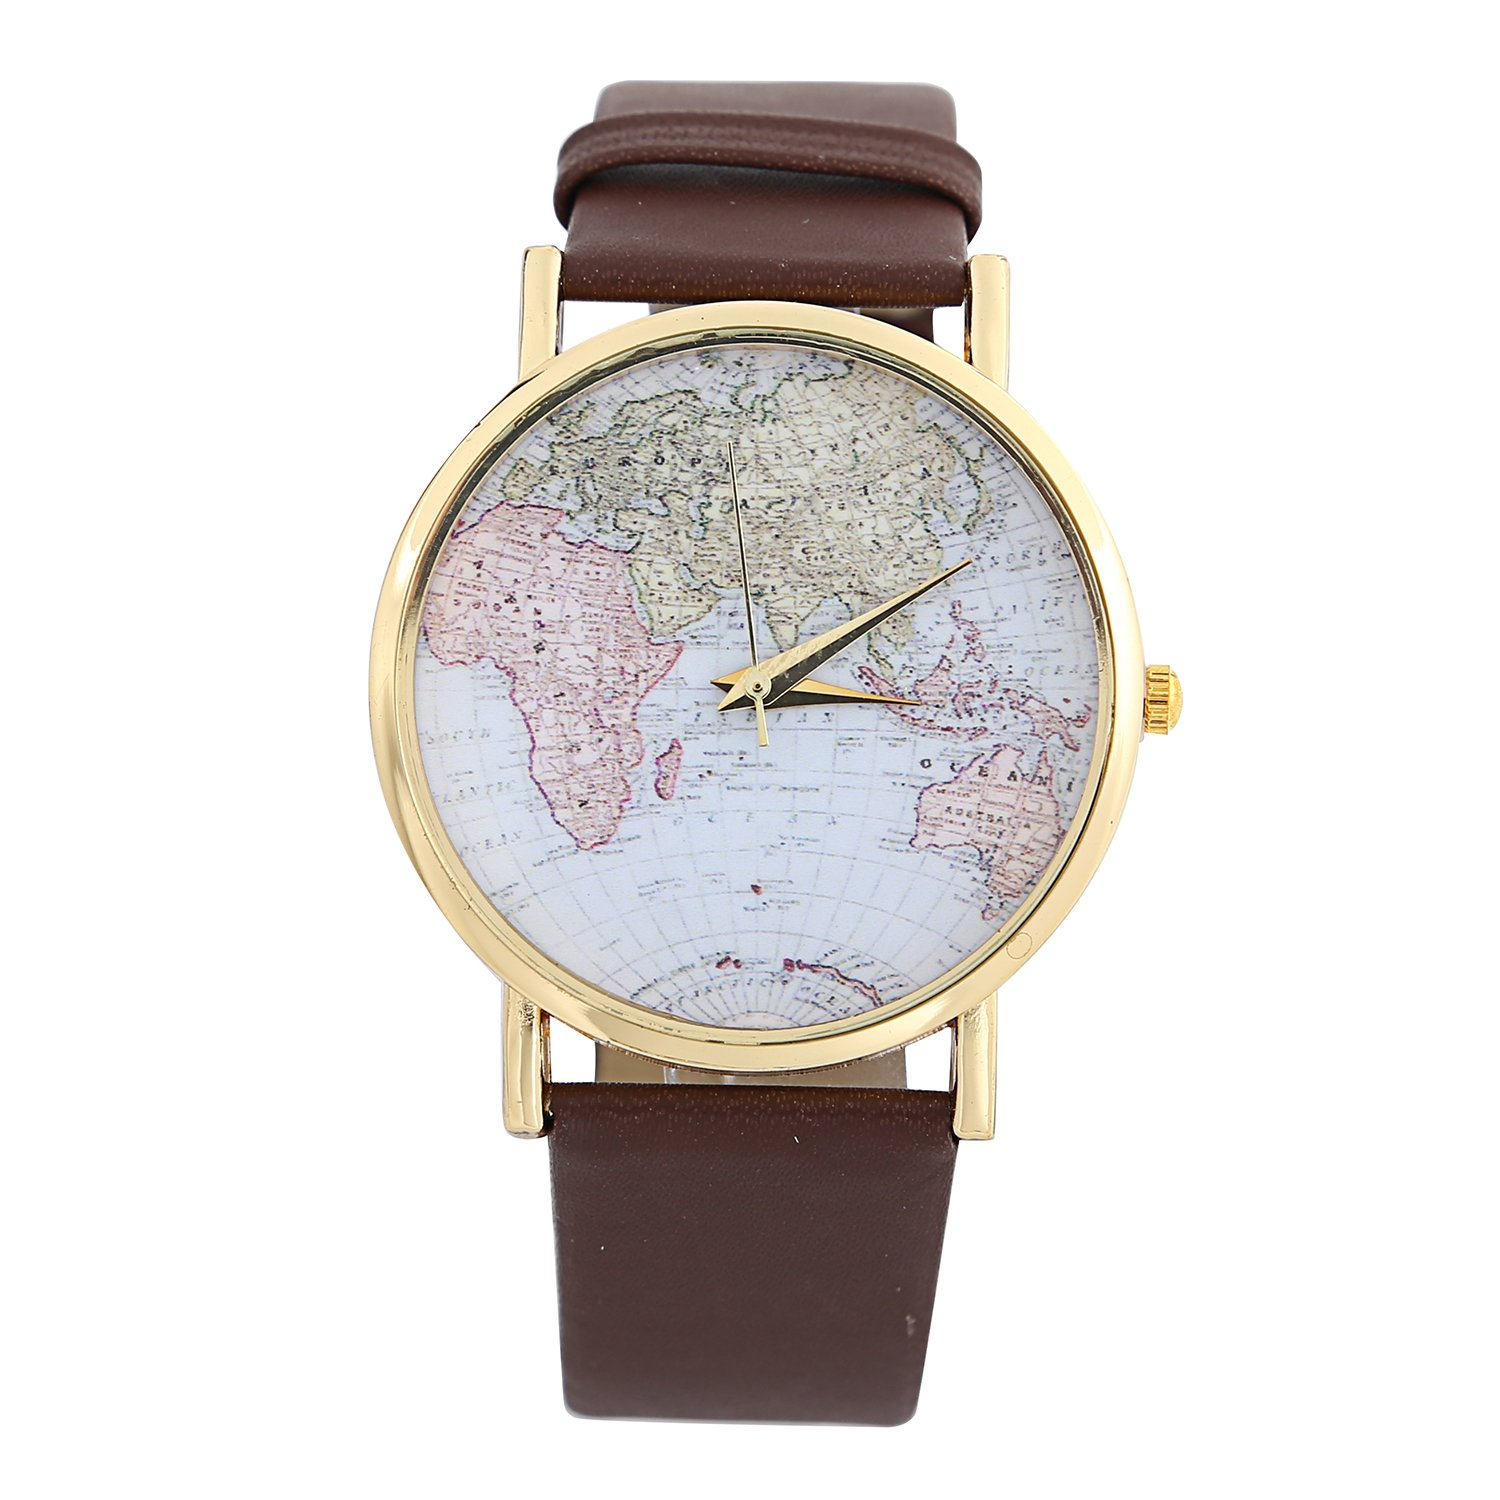 DAYAN Fashion Unisex Men Women Lady Girls World Map Leather Alloy Analog Quartz Wrist Watches Brown relojes mujer fashion unisex fashion women men casual checkers faux leather quartz analog wrist watch relojes hombre 2018